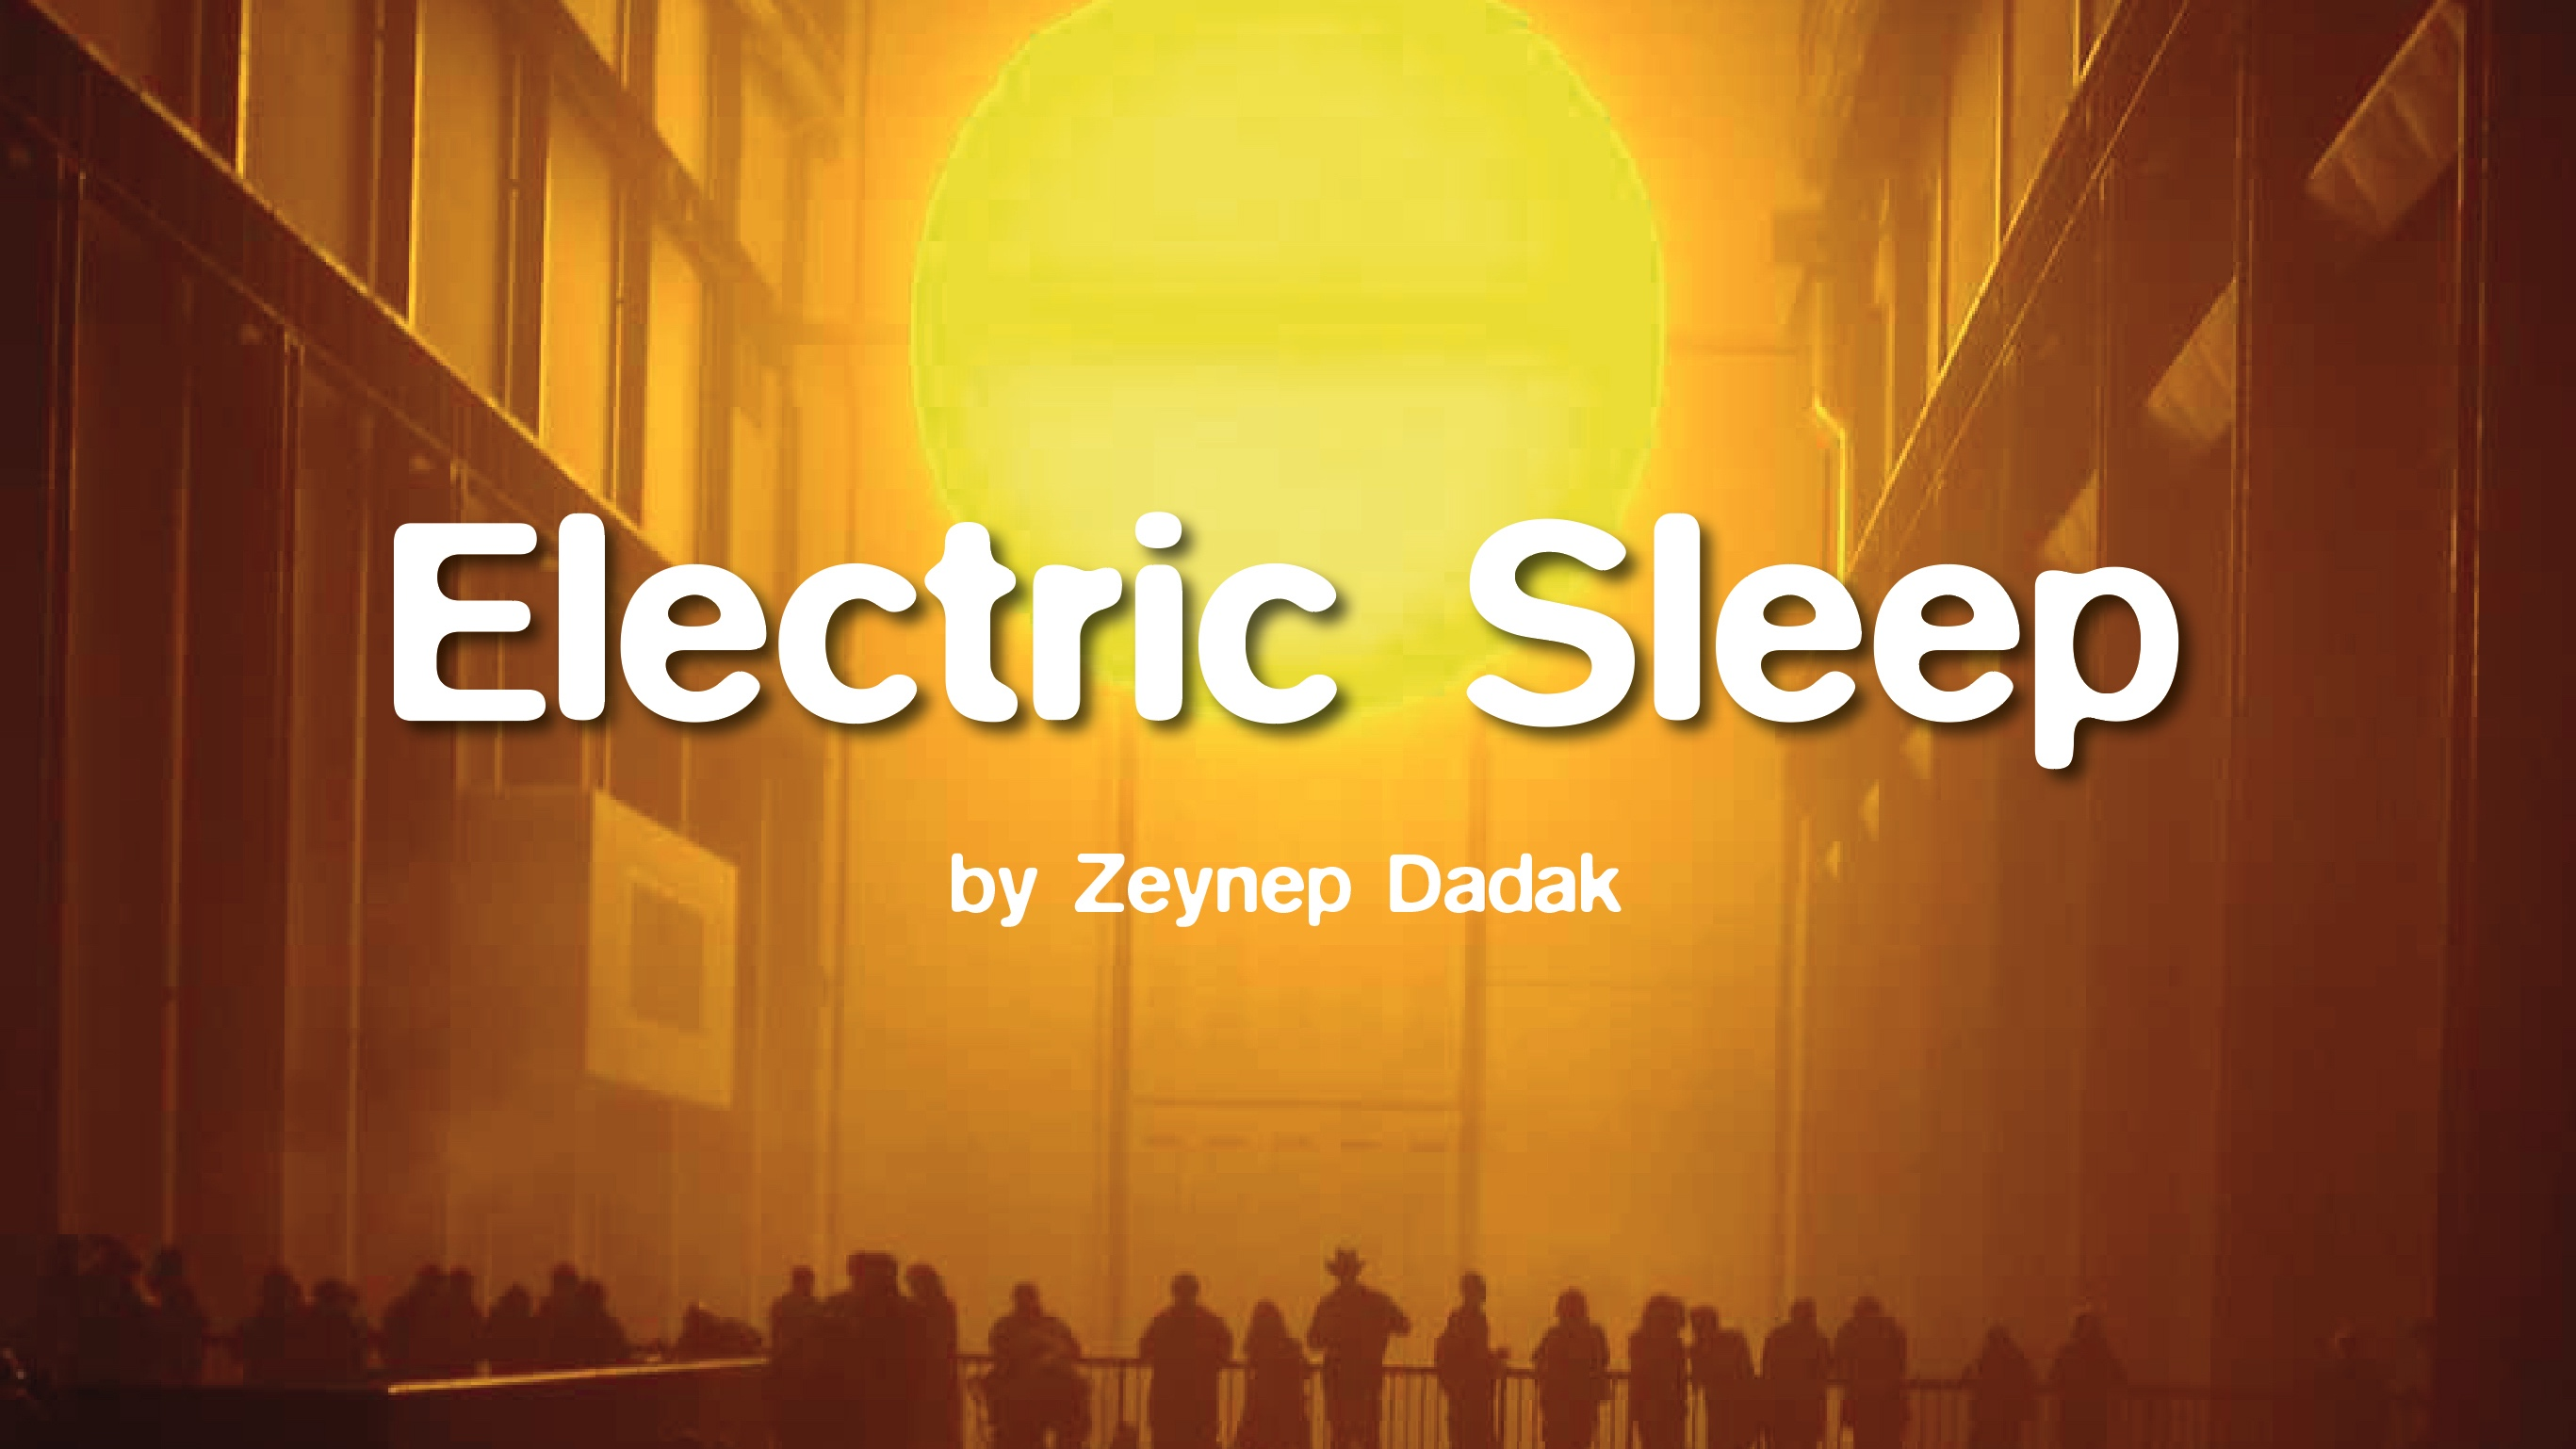 Electric Sleep